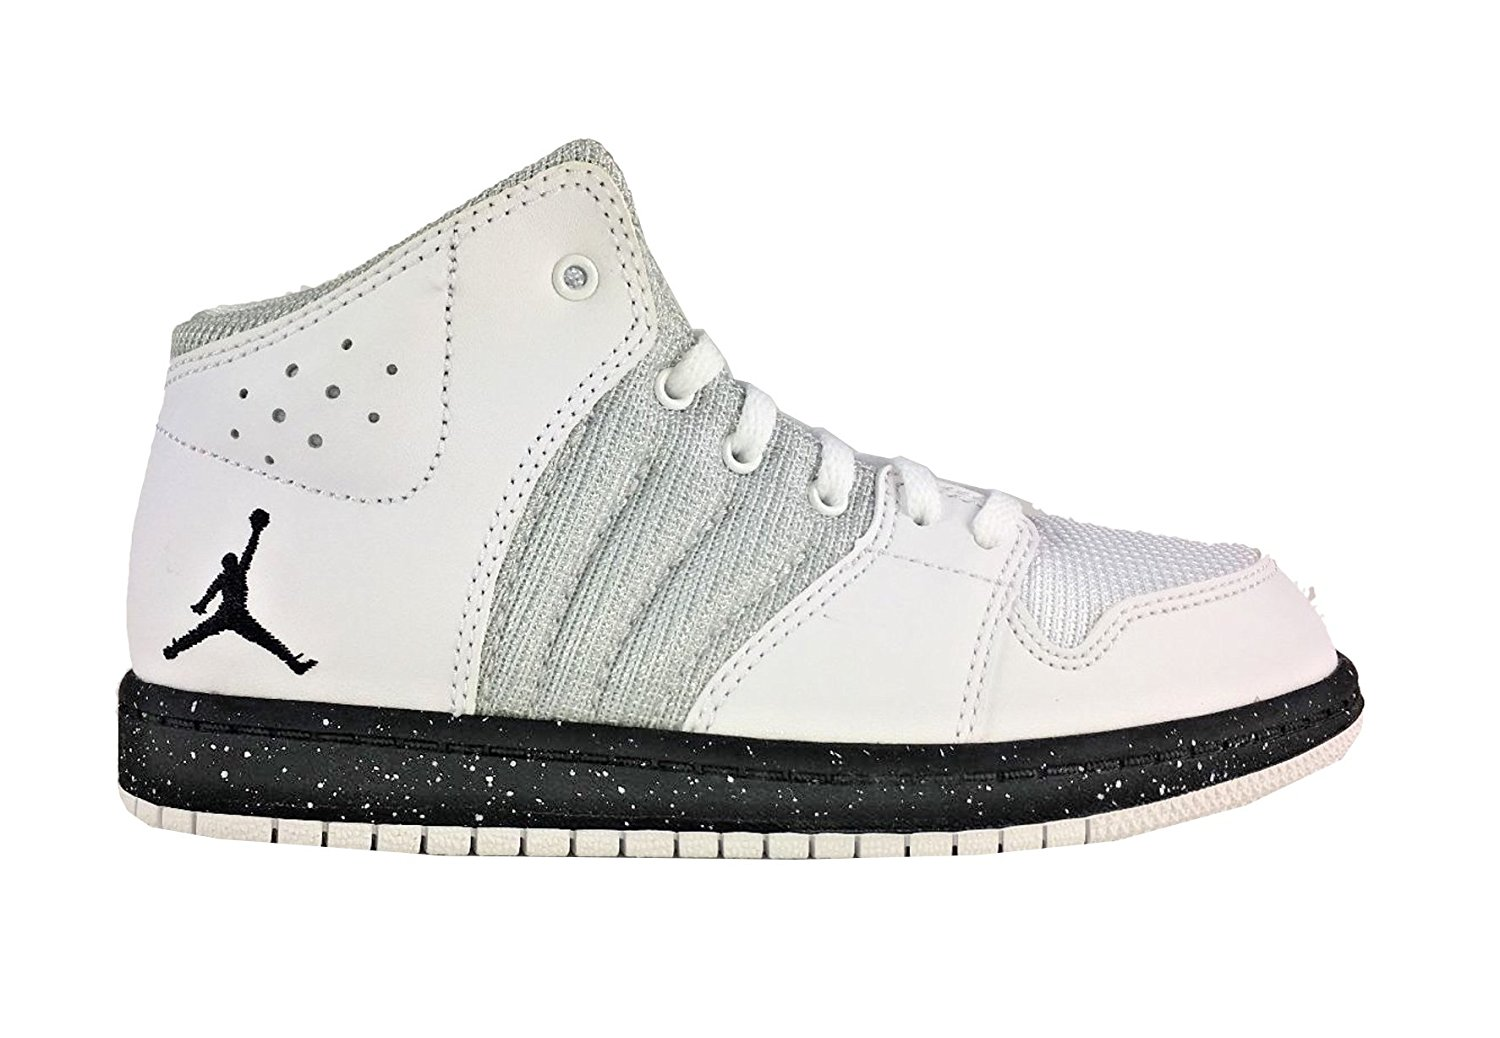 5eec877577dc Get Quotations · Jordan 1 Boys Flight 4 Premium BP Basketball Shoes Size 3  Y White Black